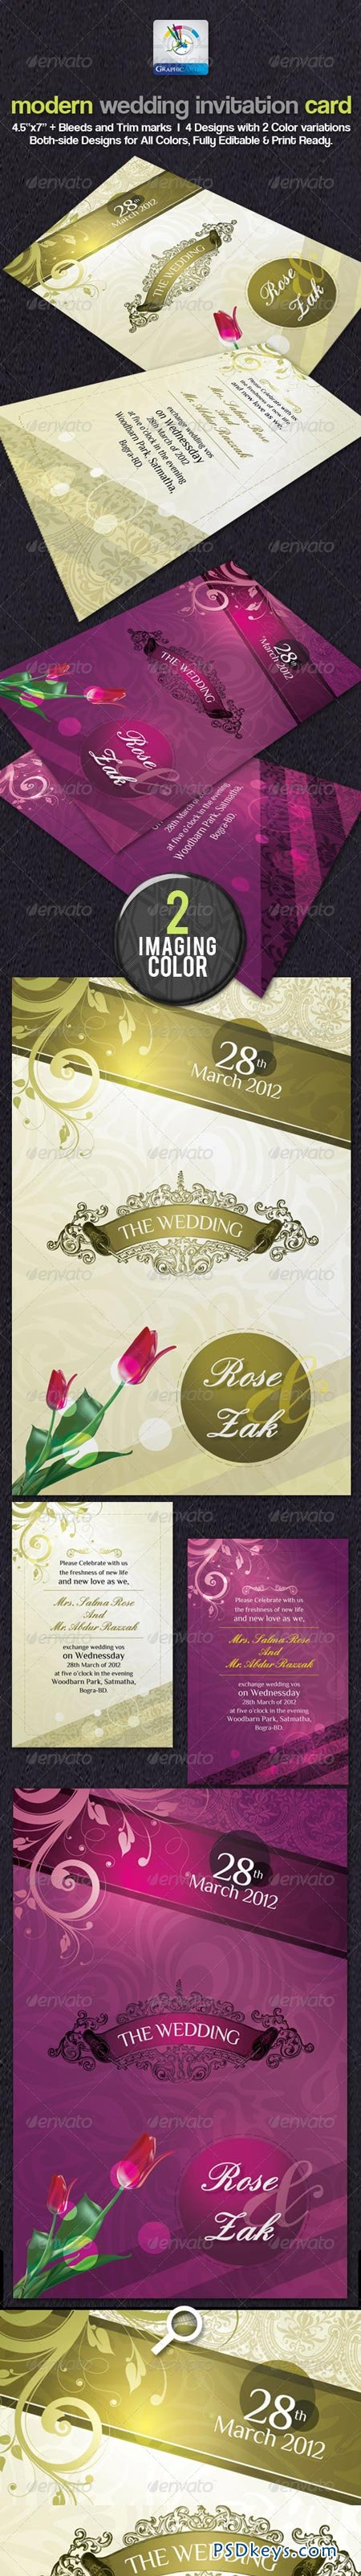 Modern Wedding Invitation Cards 2393750